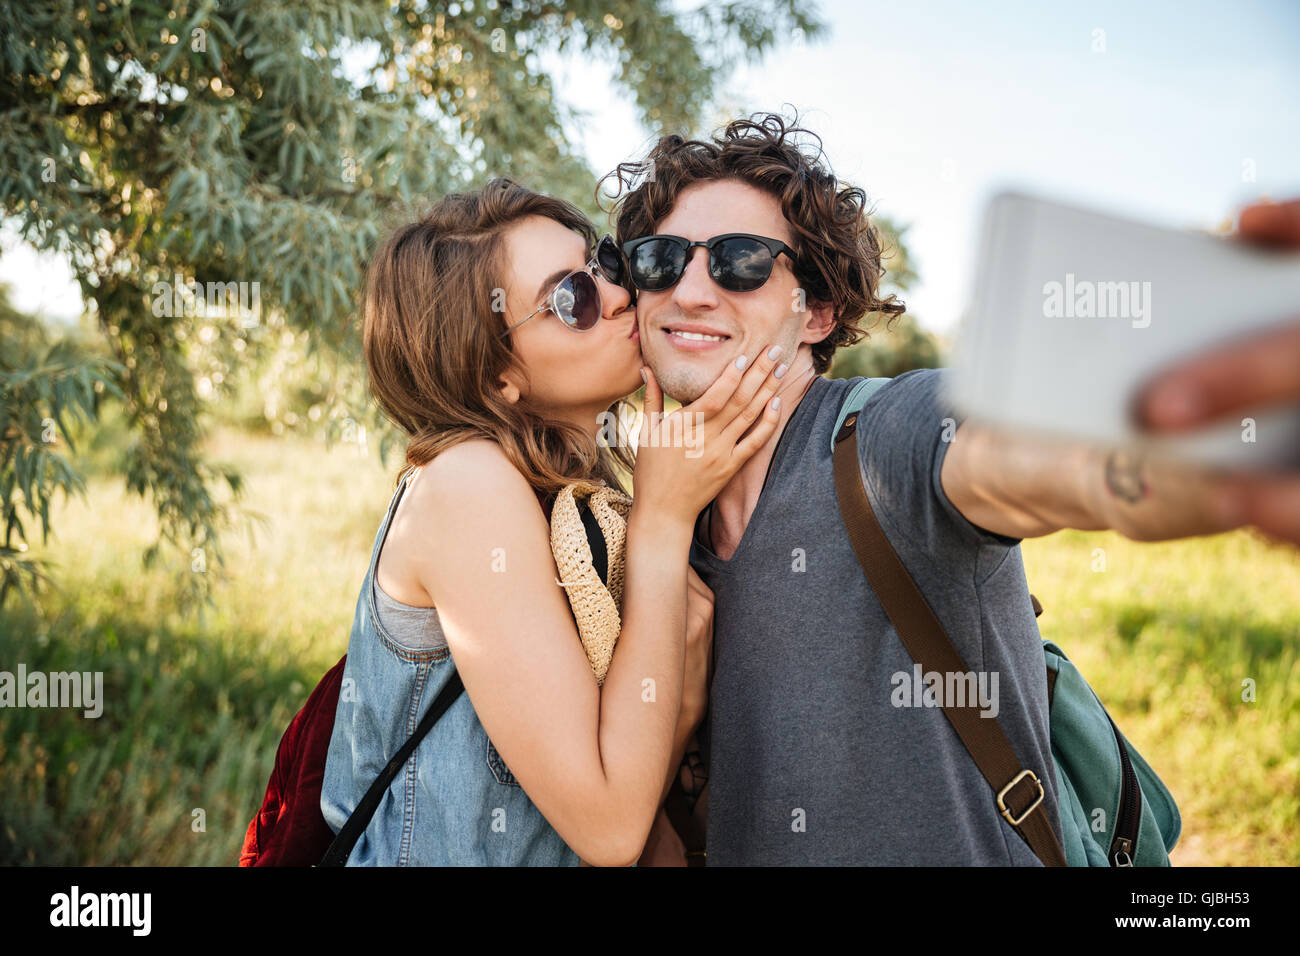 Young smiling happy couple with backpacks hiking in the forest and making selfie - Stock Image